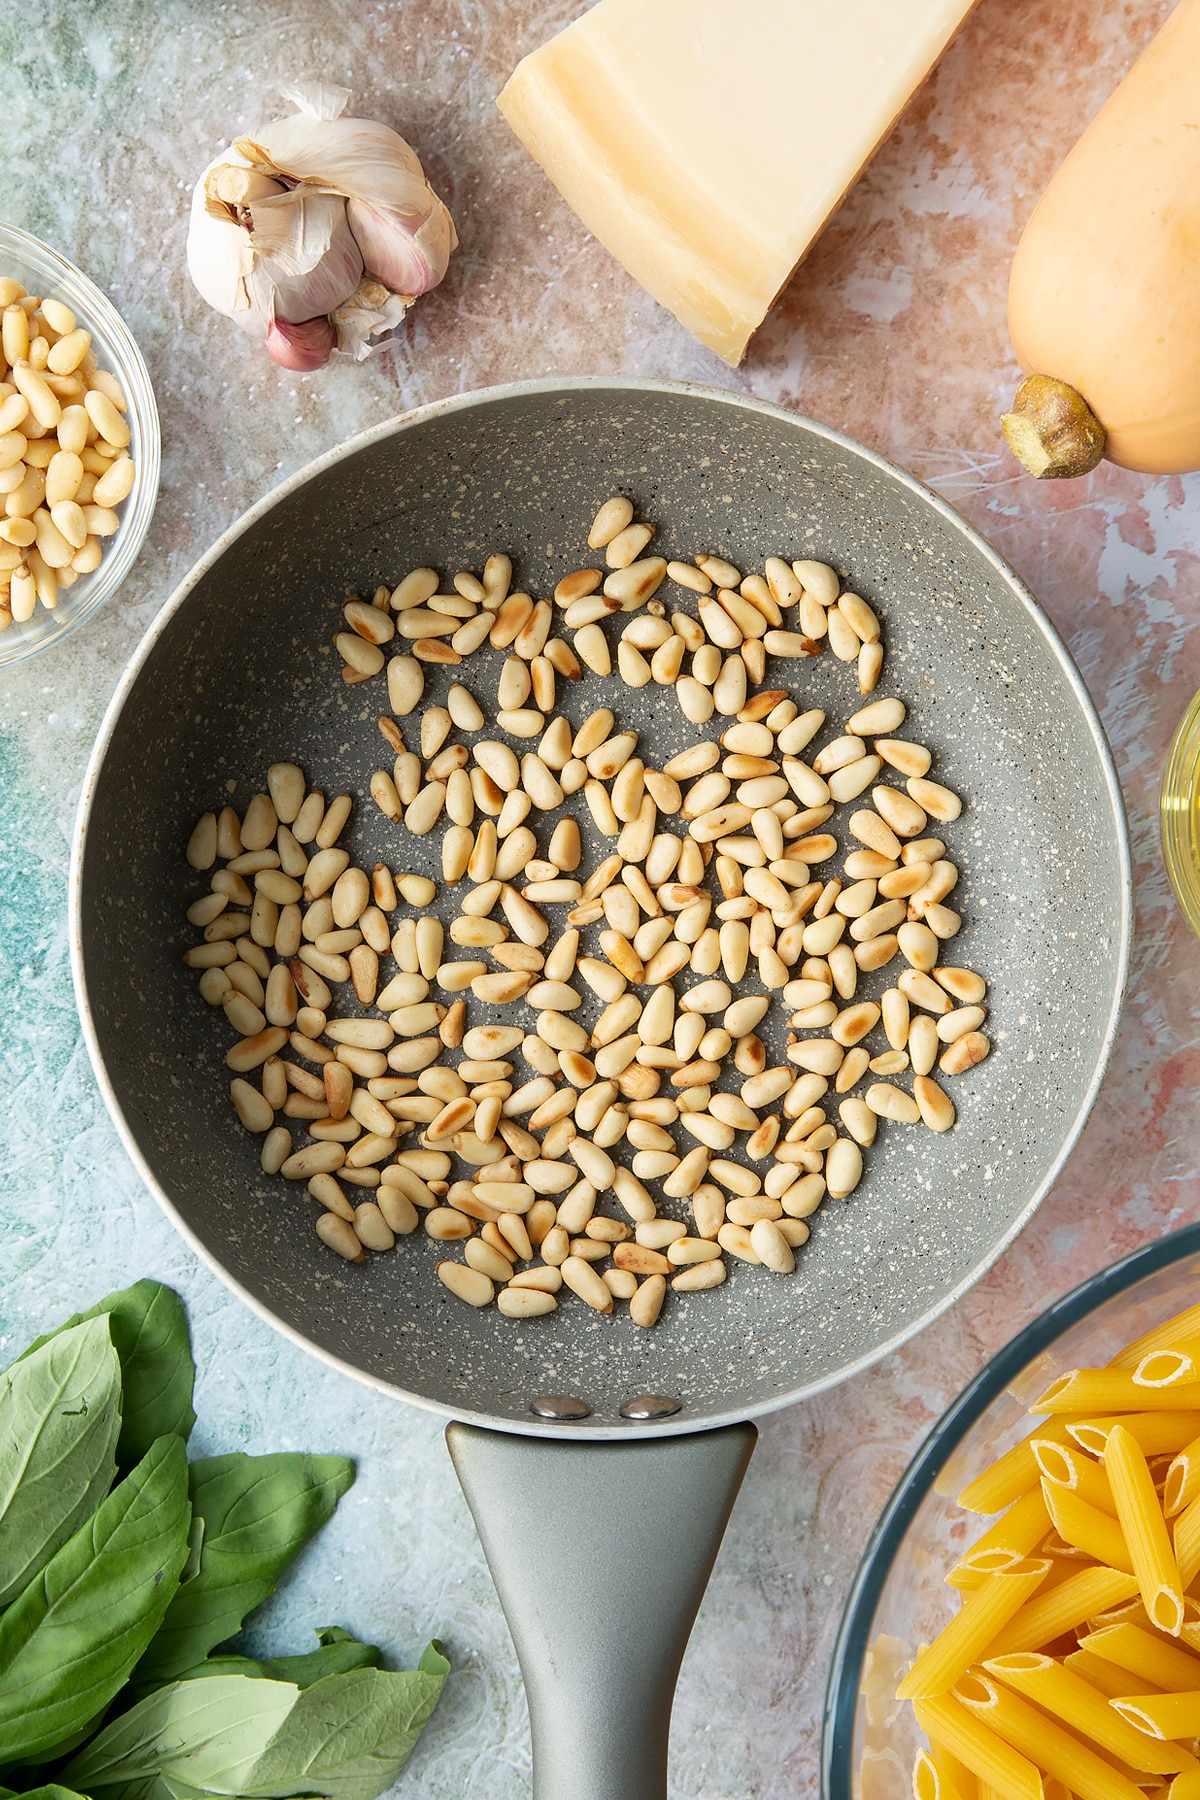 Toasted pine nuts in a small frying pan. Ingredients to make penne with butternut squash and goat cheese surround the pan.